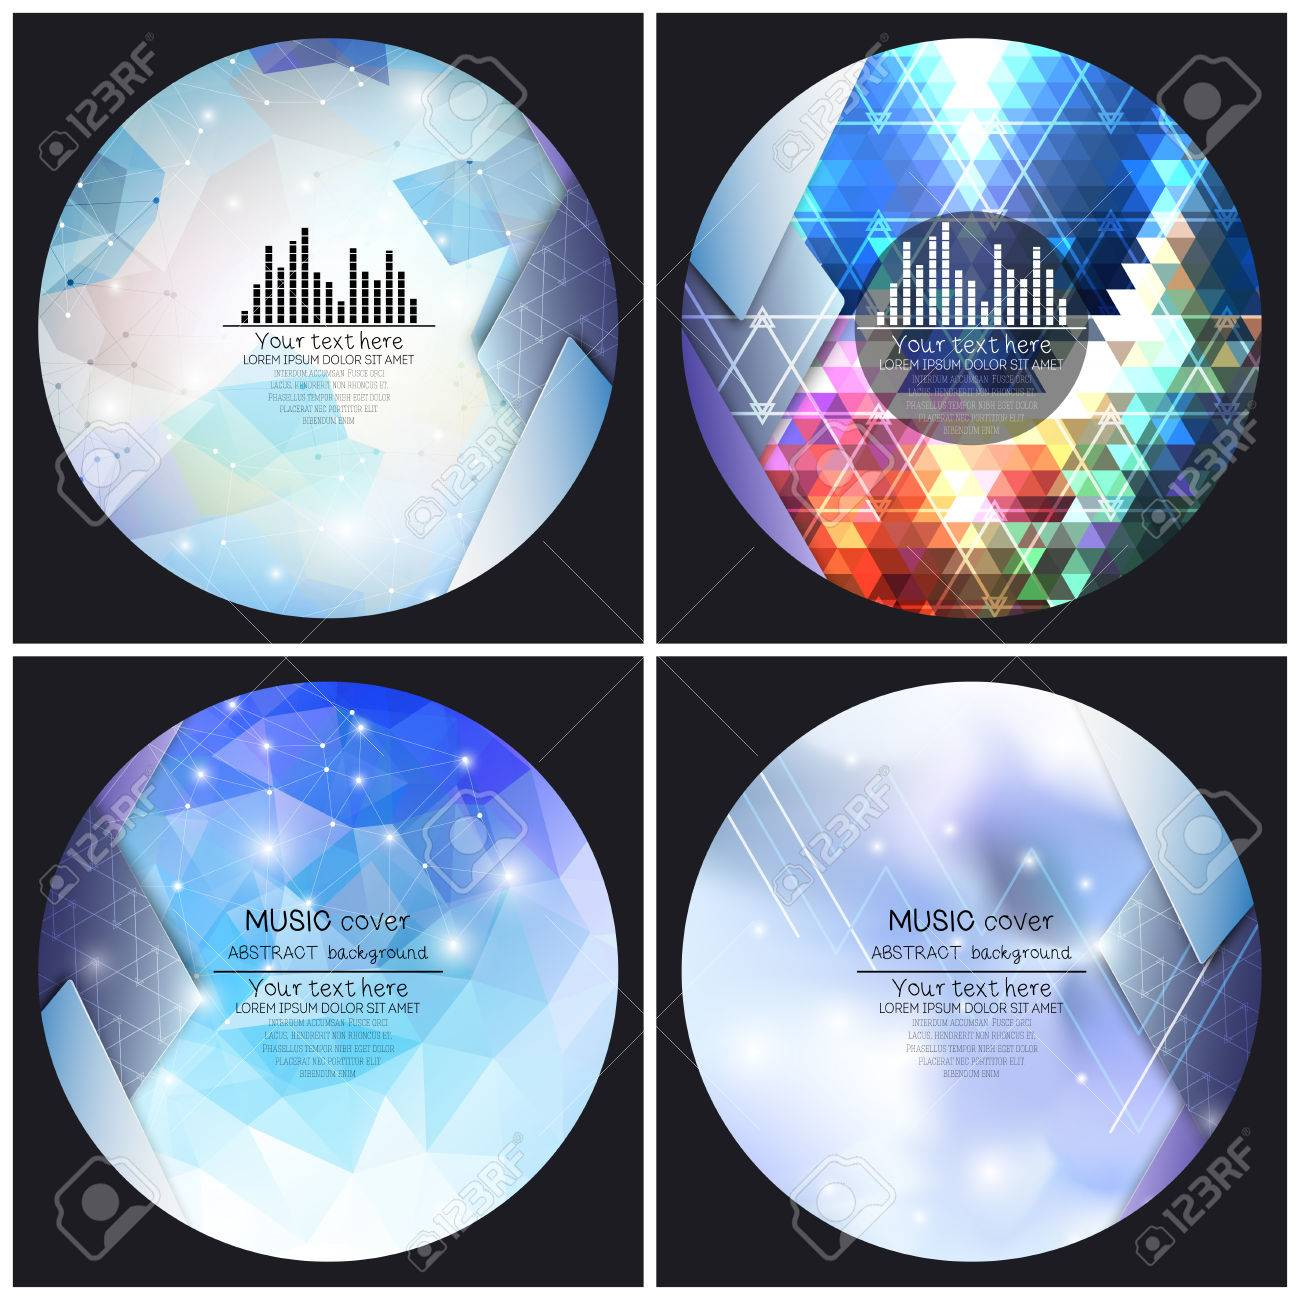 set of music album cover templates abstract backgrounds set of 4 music album cover templates abstract backgrounds geometrical patterns triangular style